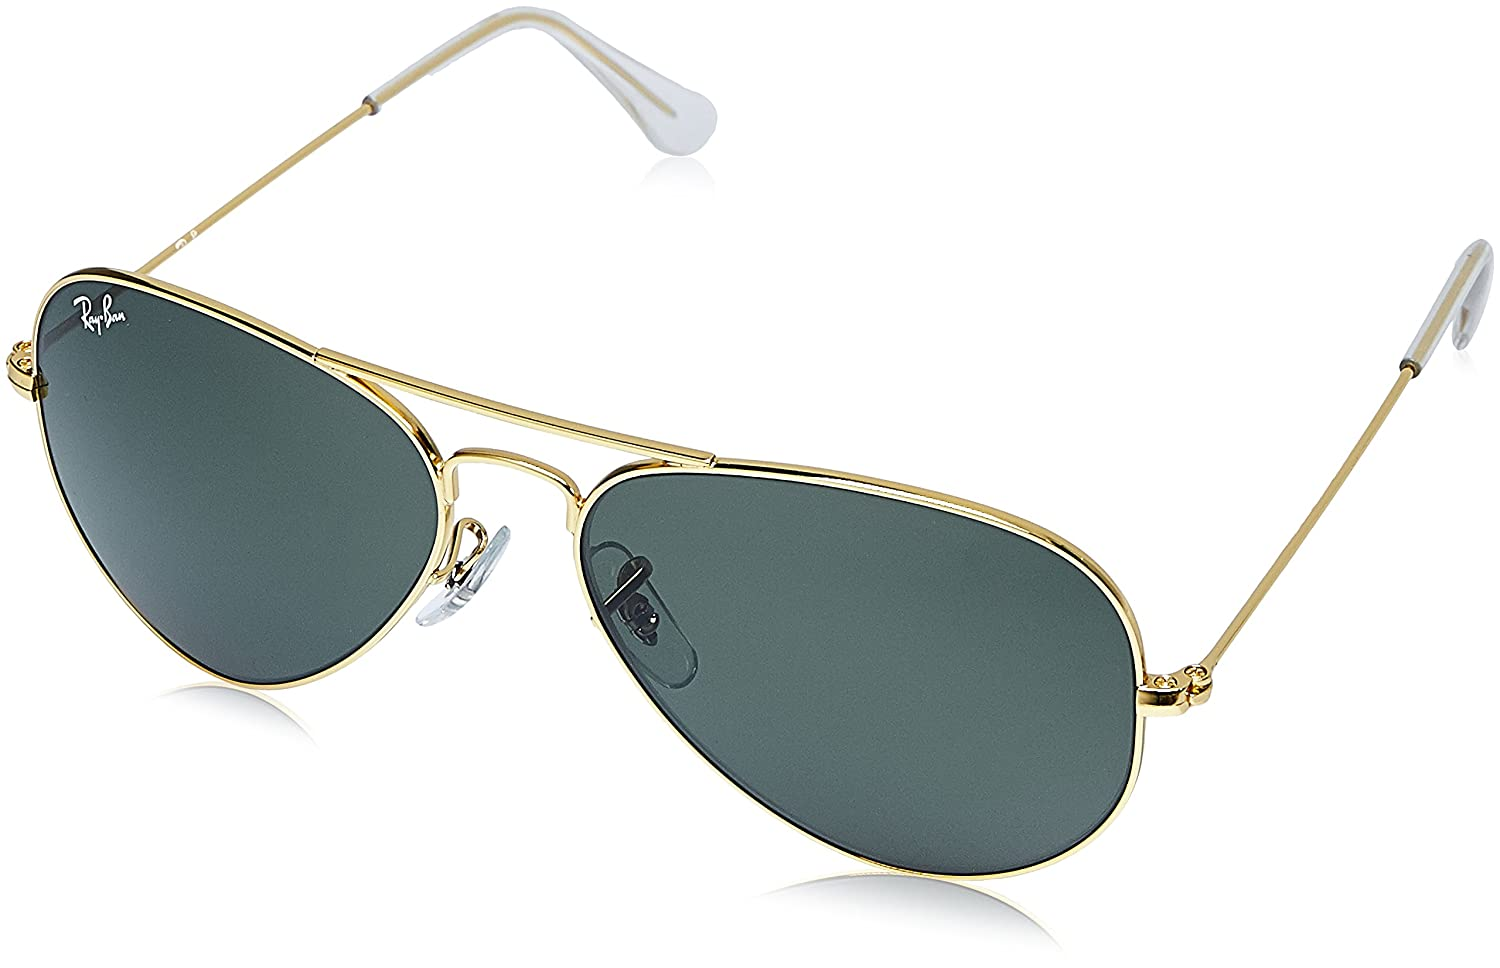 8a1cb3d101 Ray-Ban Gradient Aviator Men s Sunglasses (15